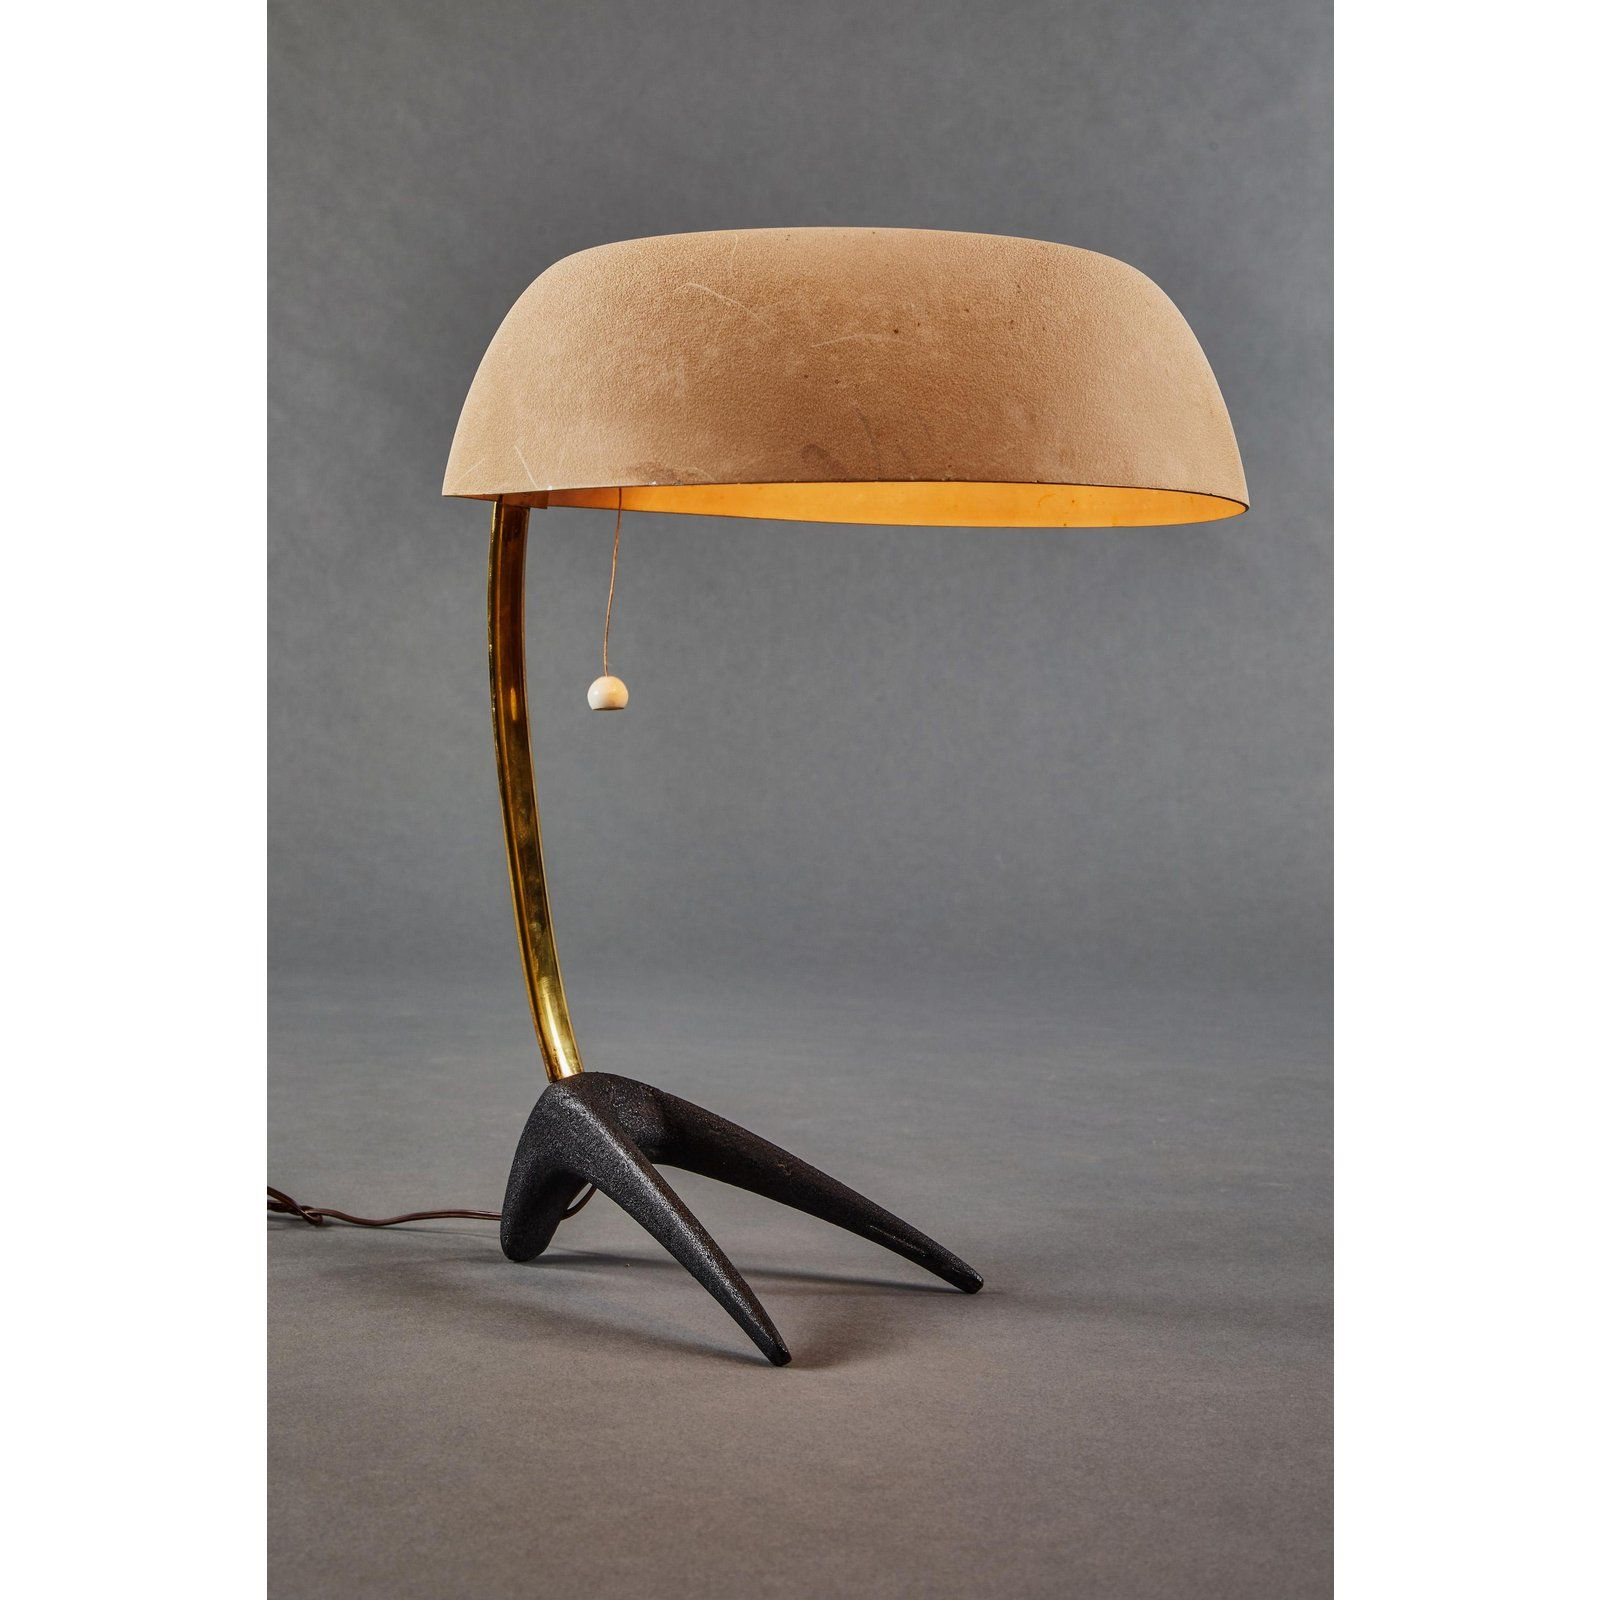 Incredible A Highly Unusual Table Lamp